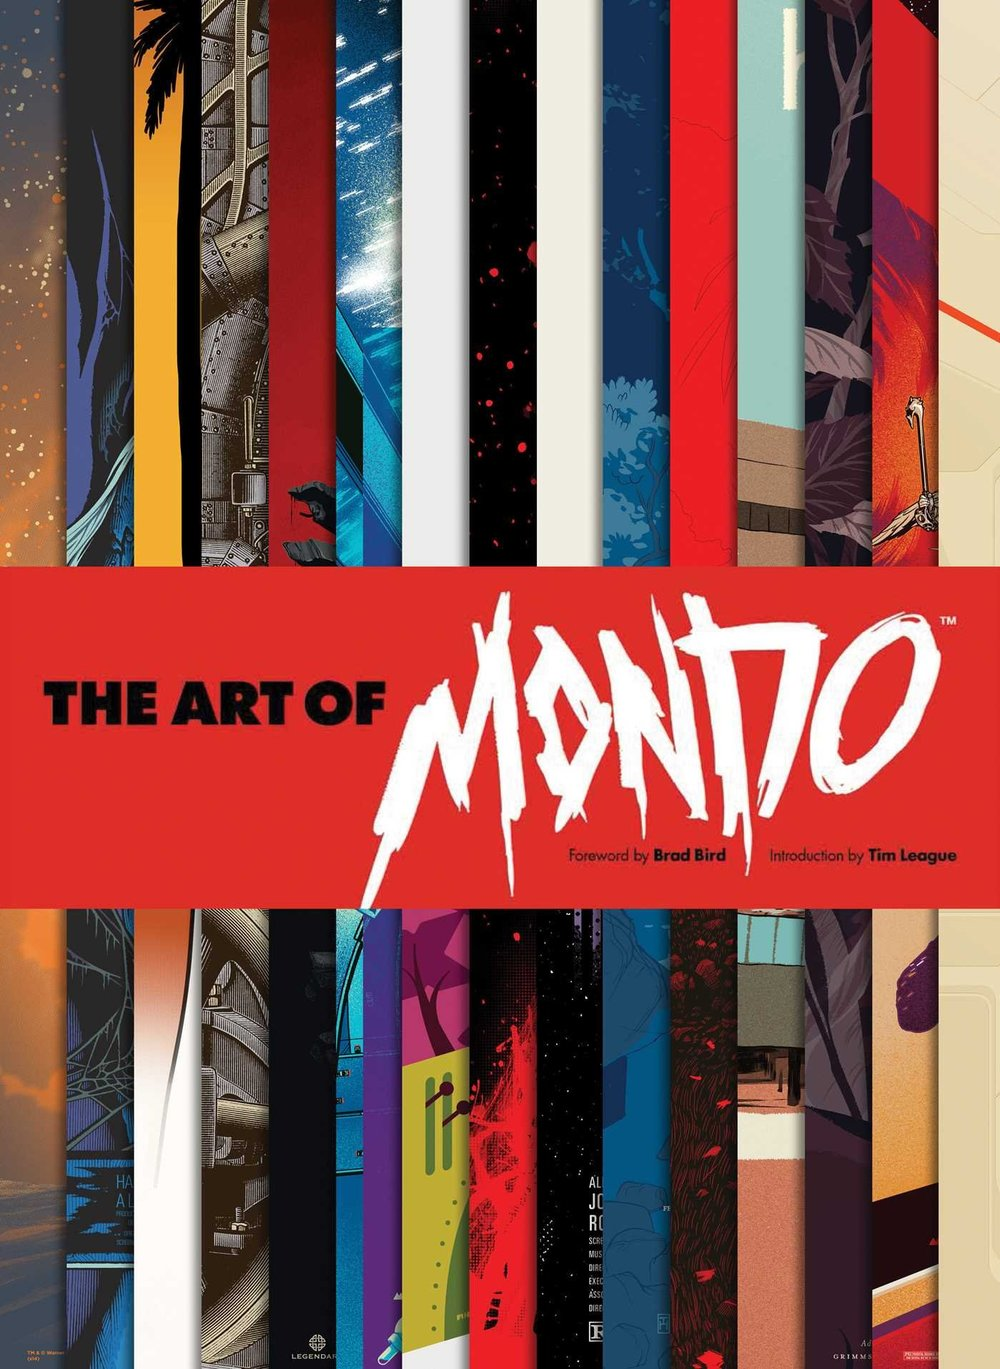 The Art of Mondo book cover.jpg